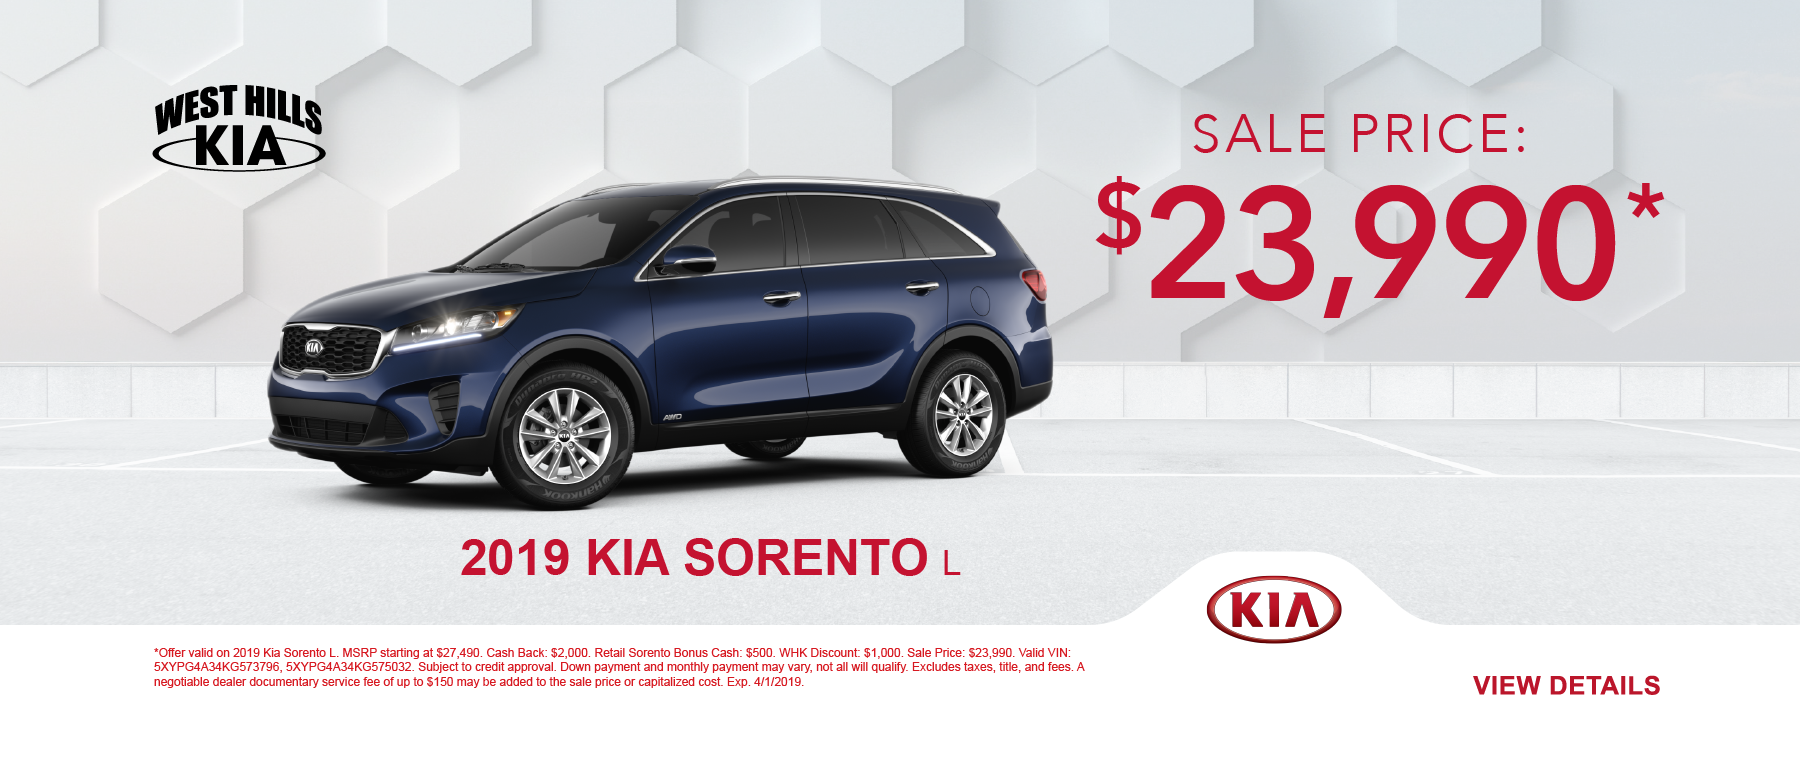 2019 Kia Sorento L   (Featured Vehicle)  MSRP: $27,490 Cash Back: $2,000 Retail Sorento Bonus Cash: $500 WHK Discount: $1,000 Sale Price: $23,990 *   *Offer valid on 2019 Kia Sorento L. MSRP starting at $27,490. Cash Back: $2,000. Retail Sorento Bonus Cash: $500. WHK Discount: $1,000. Sale Price: $23,990. Valid VIN: 5XYPG4A34KG573796, 5XYPG4A34KG575032. Subject to credit approval. Down payment and monthly payment may vary, not all will qualify. Excludes taxes, title, and fees. A negotiable dealer documentary service fee of up to $150 may be added to the sale price or capitalized cost. Exp. 4/1/2019.